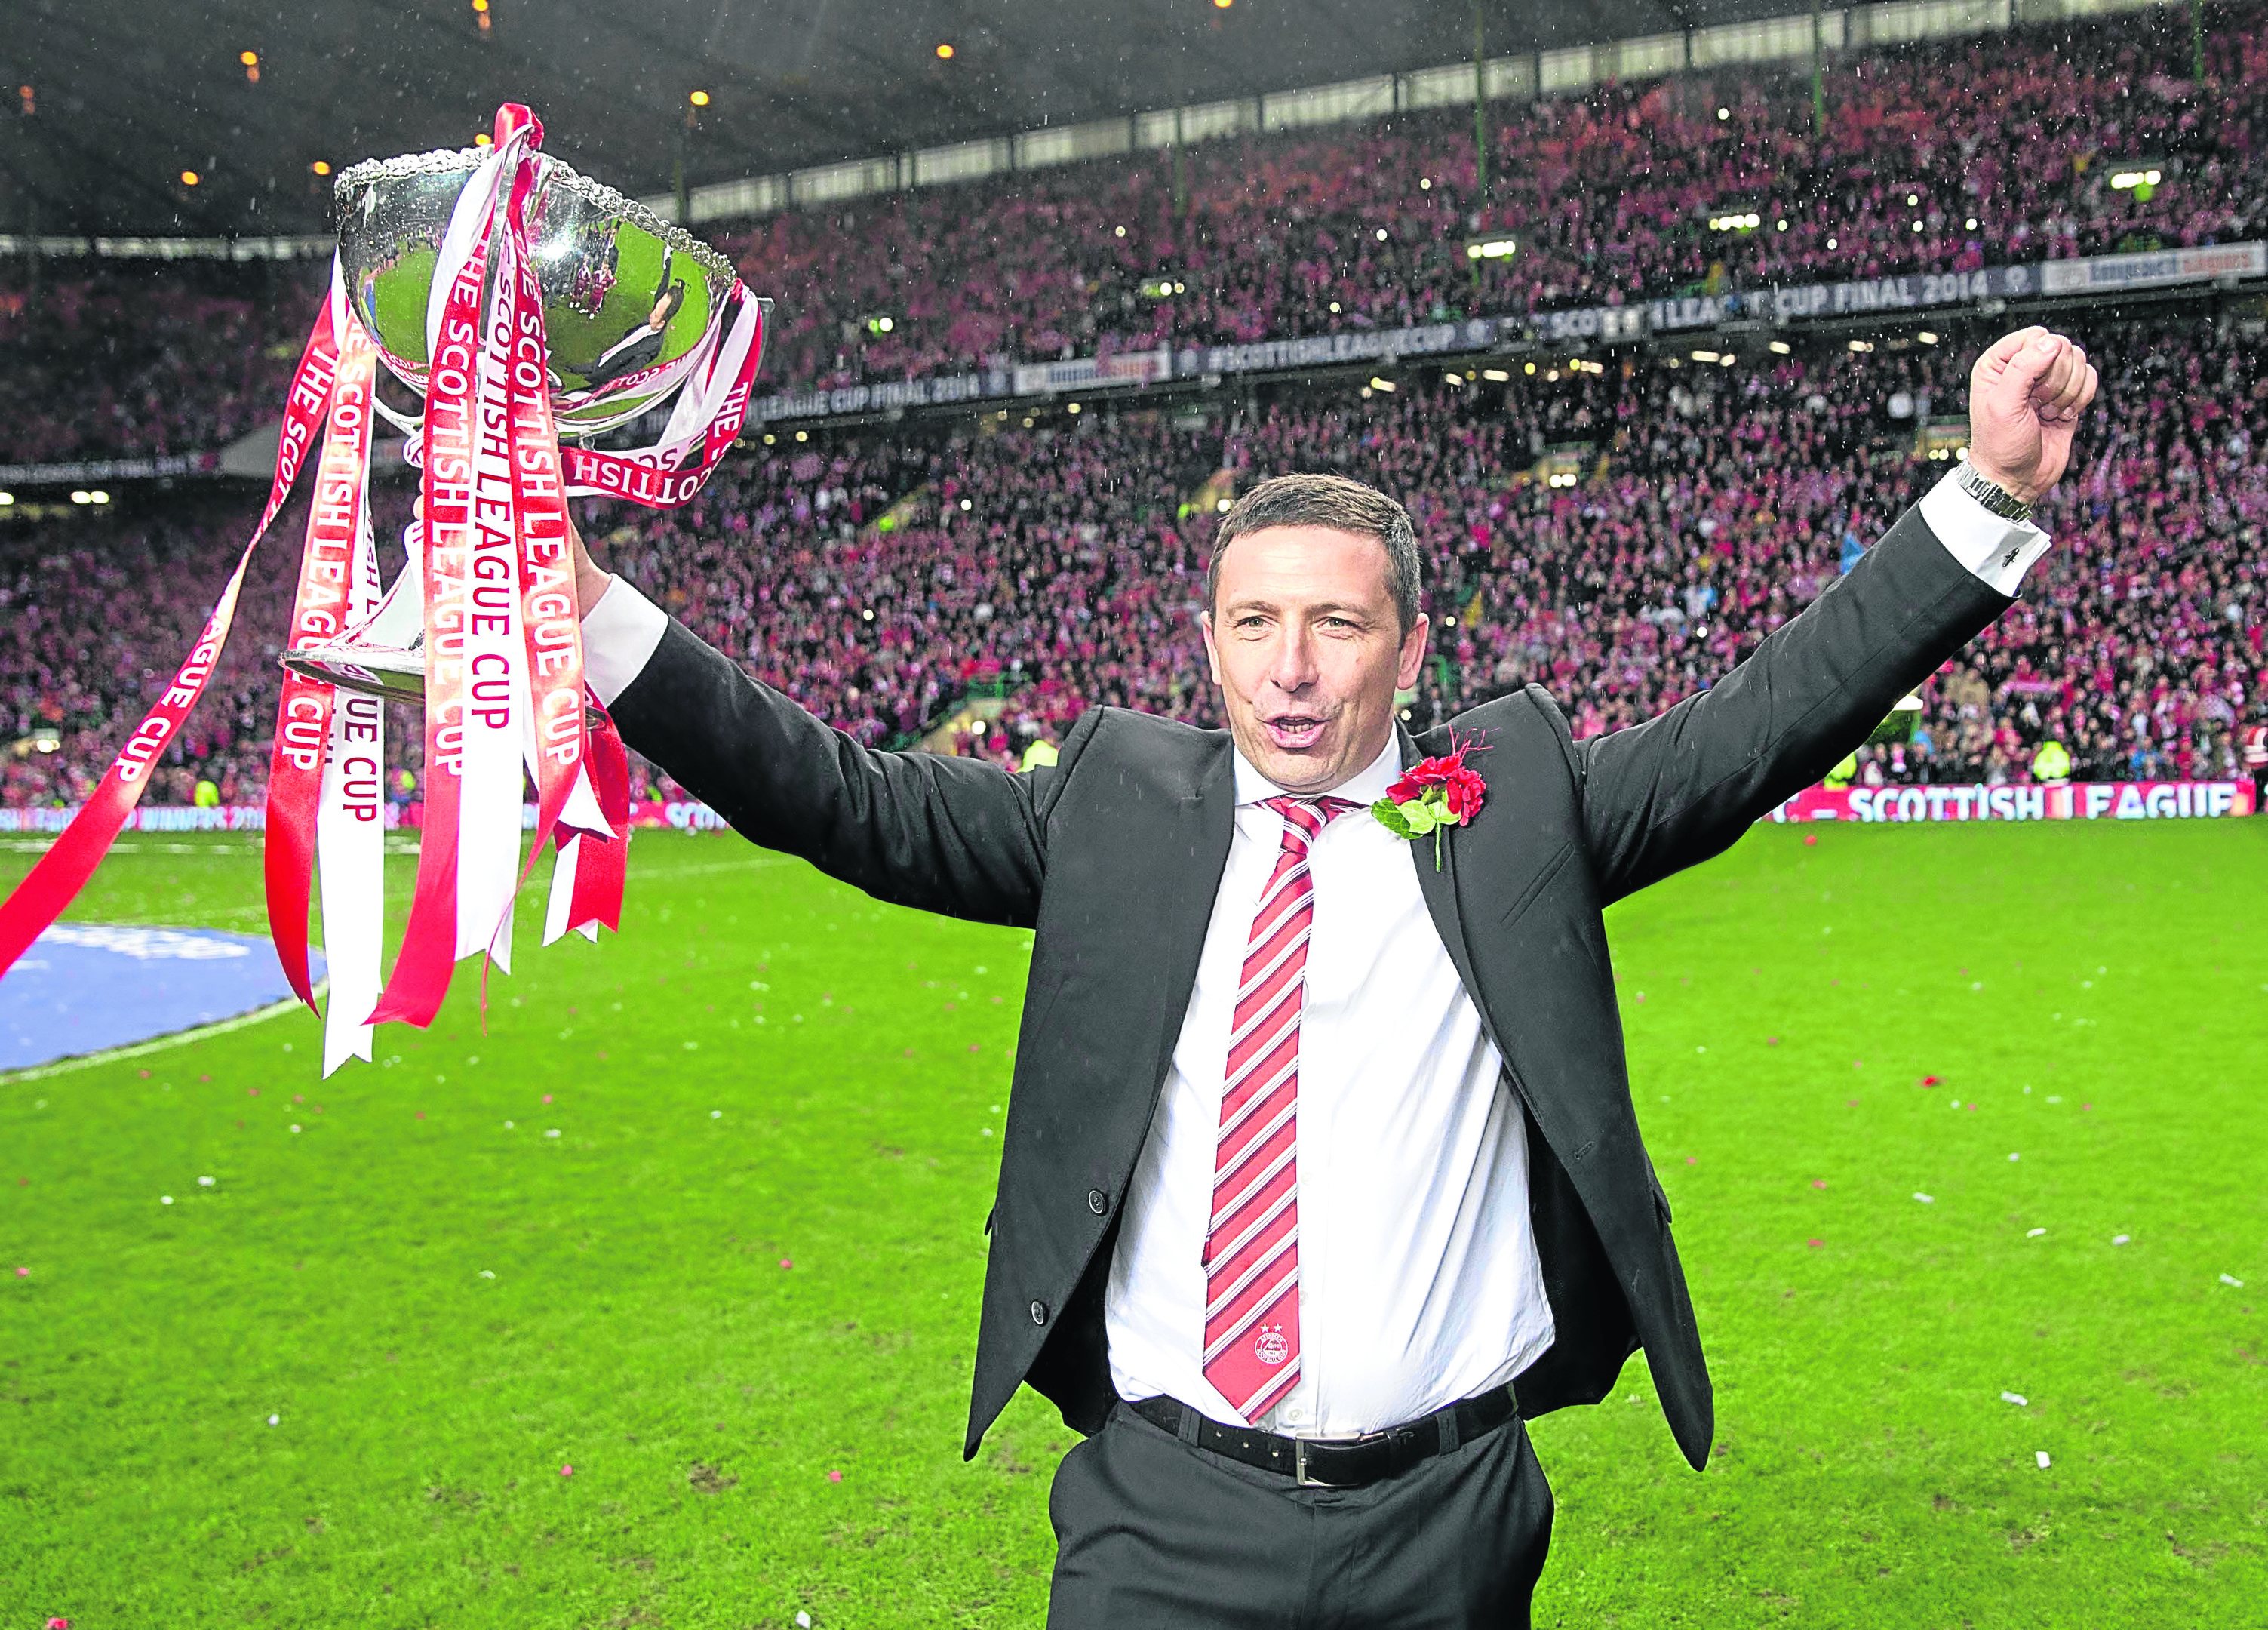 Aberdeen manager Derek McInnes after the Scottish League Cup Final at Celtic Park, Glasgow, in 2014.